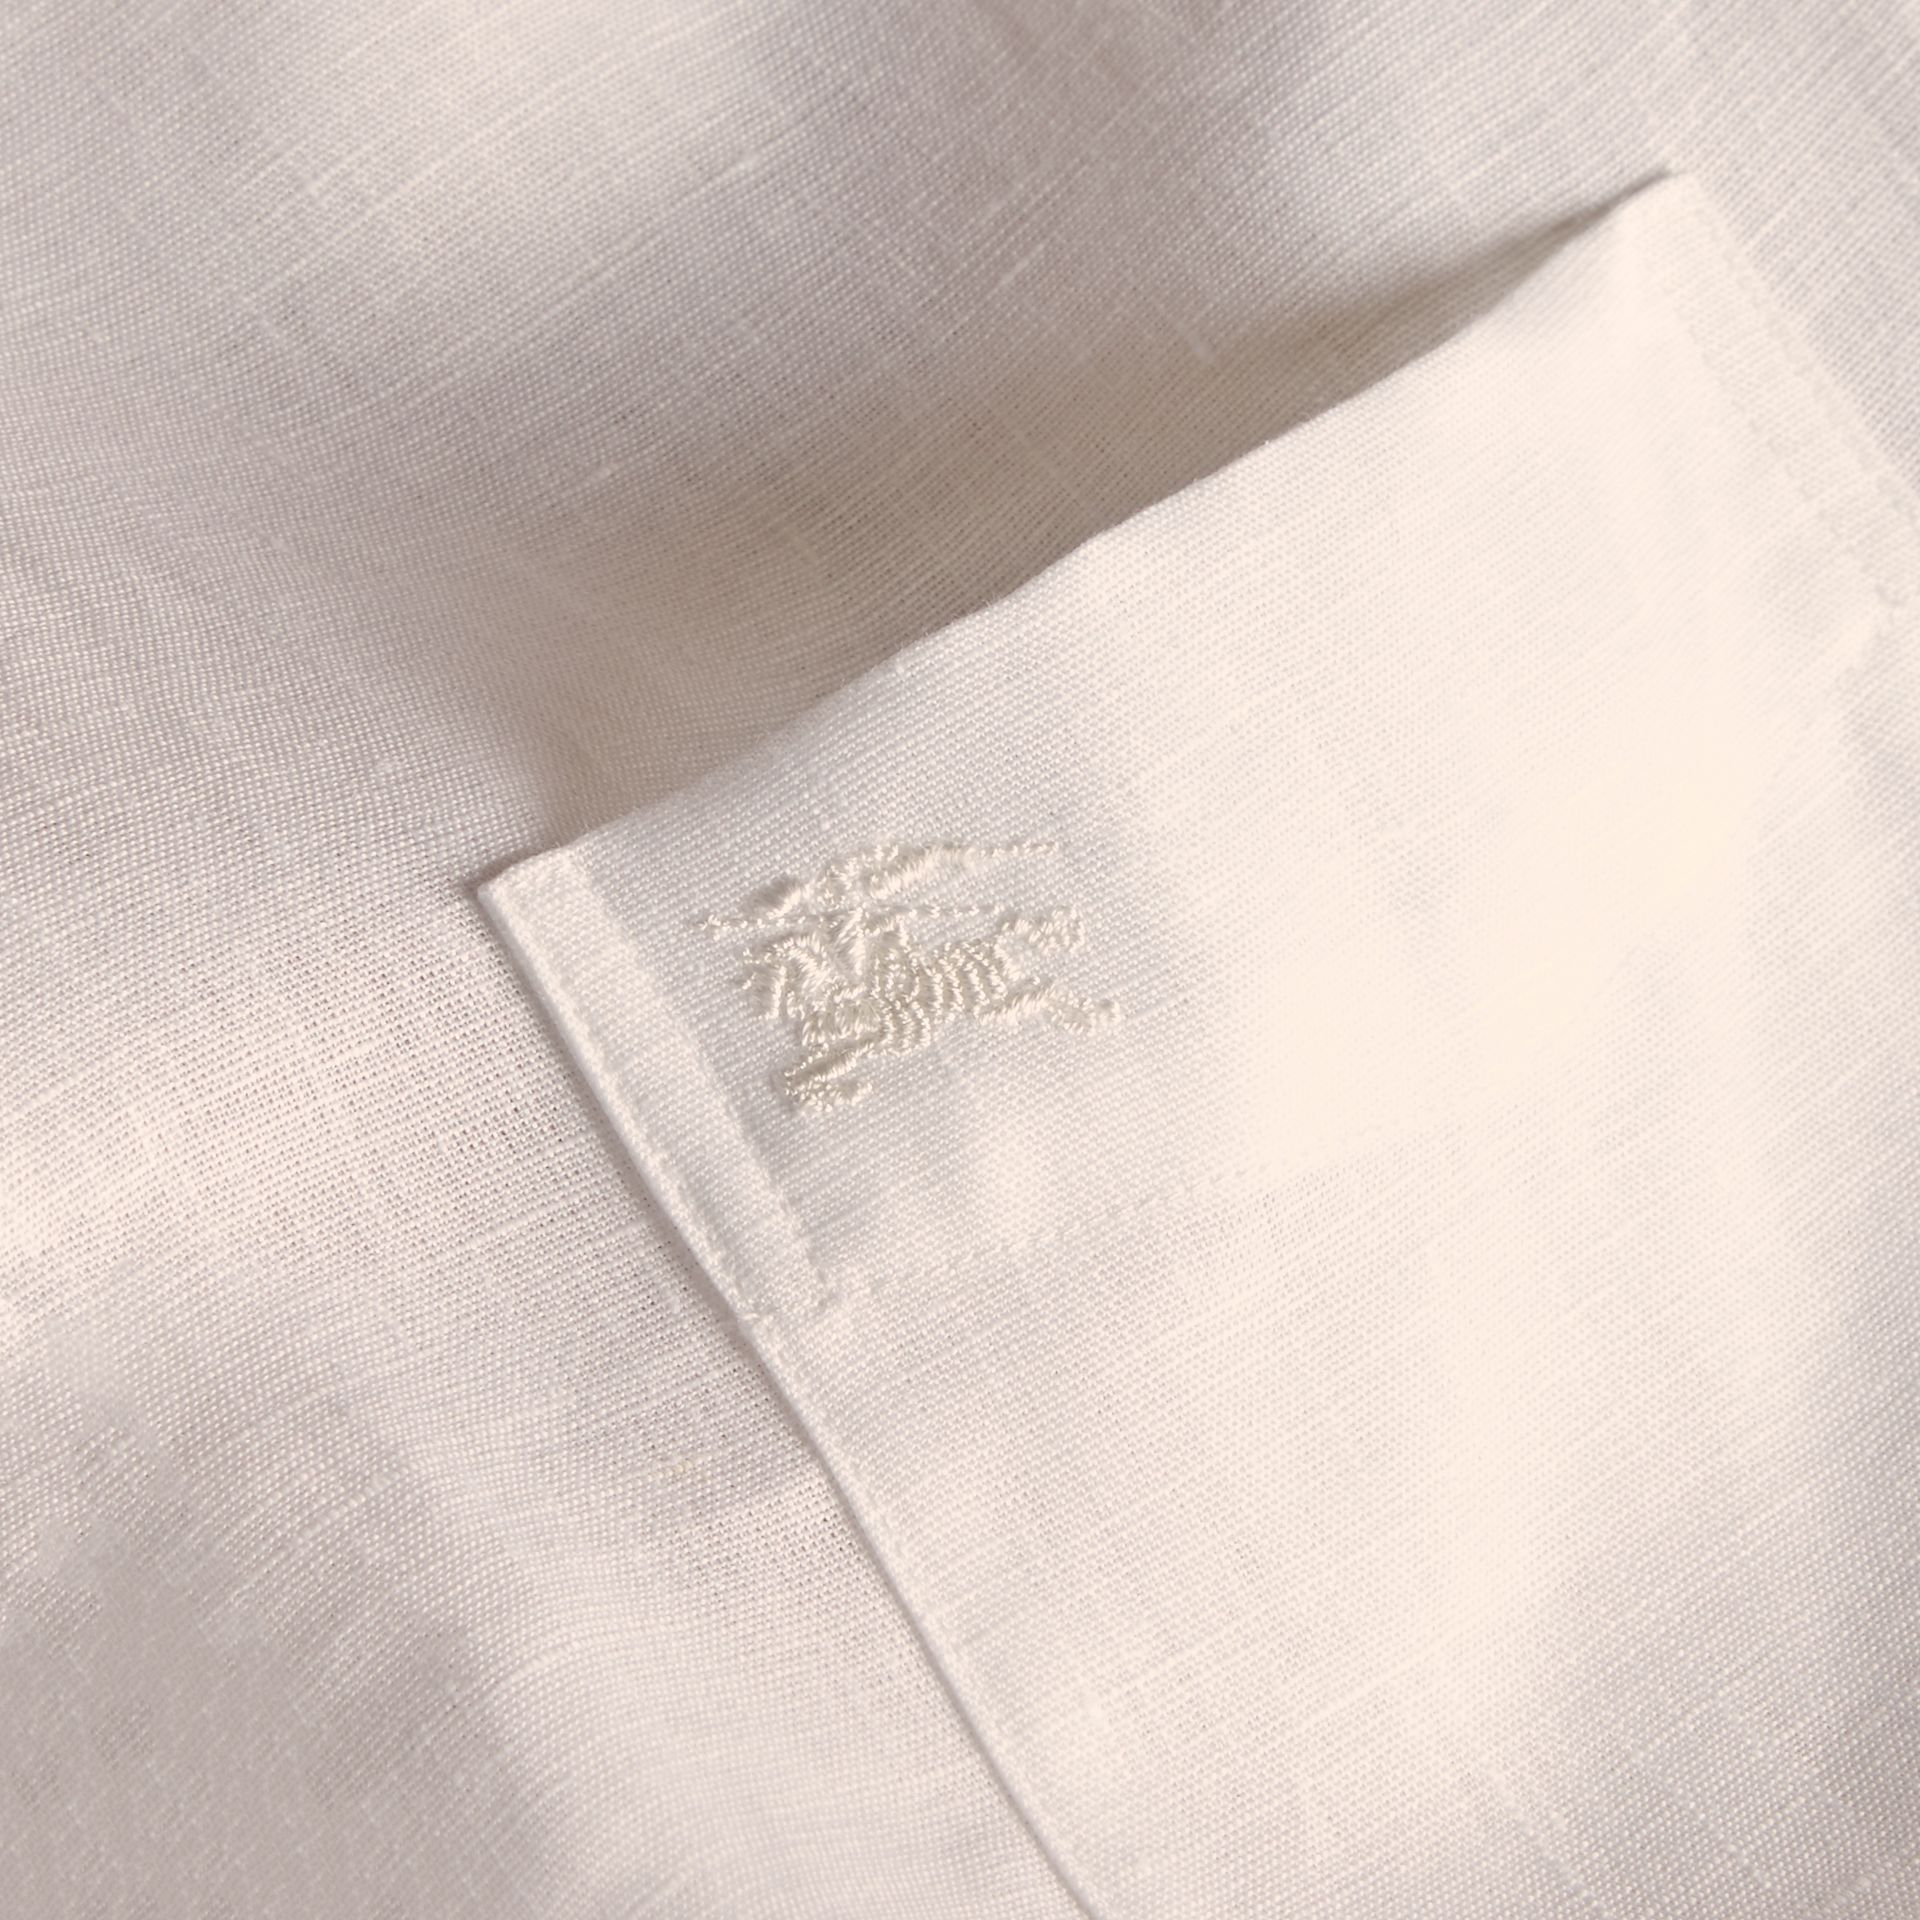 Check Detail Linen Shirt White - gallery image 2